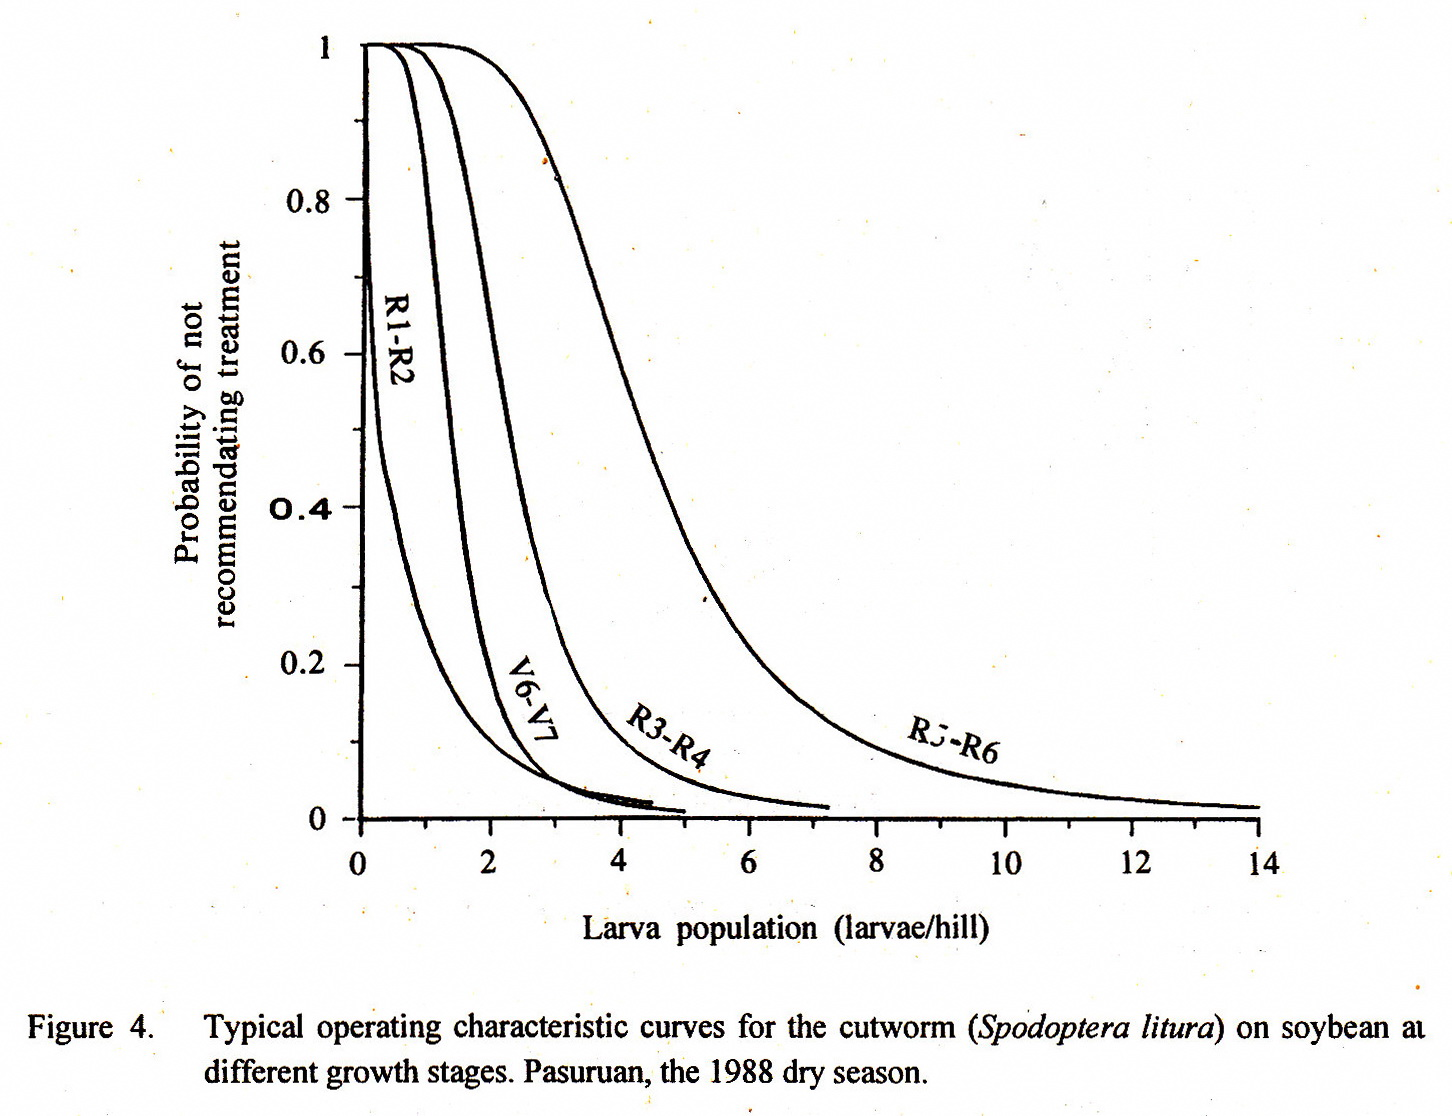 Muhammad arifin 48 economic injury level and sequential sampling curve of average sample number the average number of samples to be observed for controlling the third instar larvae of soybean cutwonn at different ccuart Images